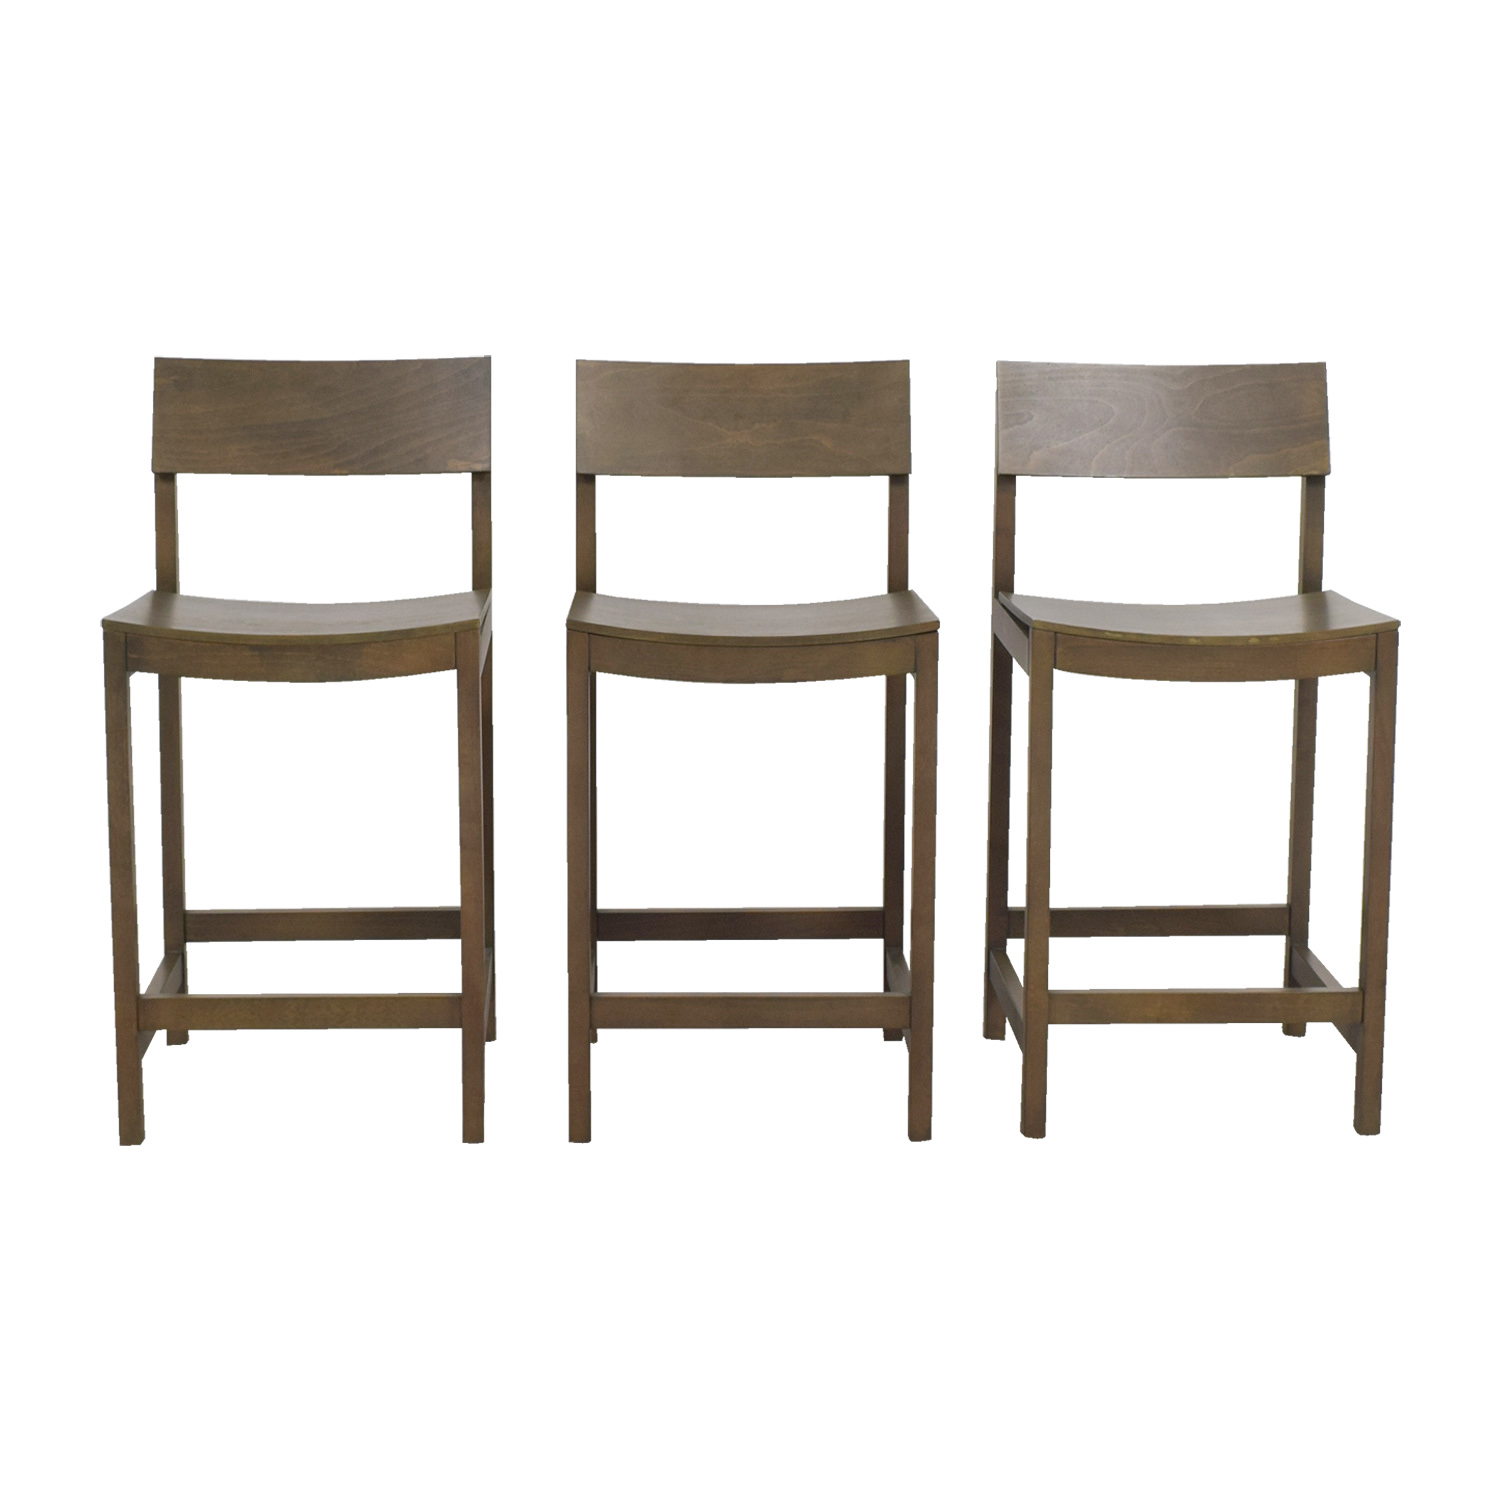 CB2 CB2 Slide Grey Tan Counter Stools coupon